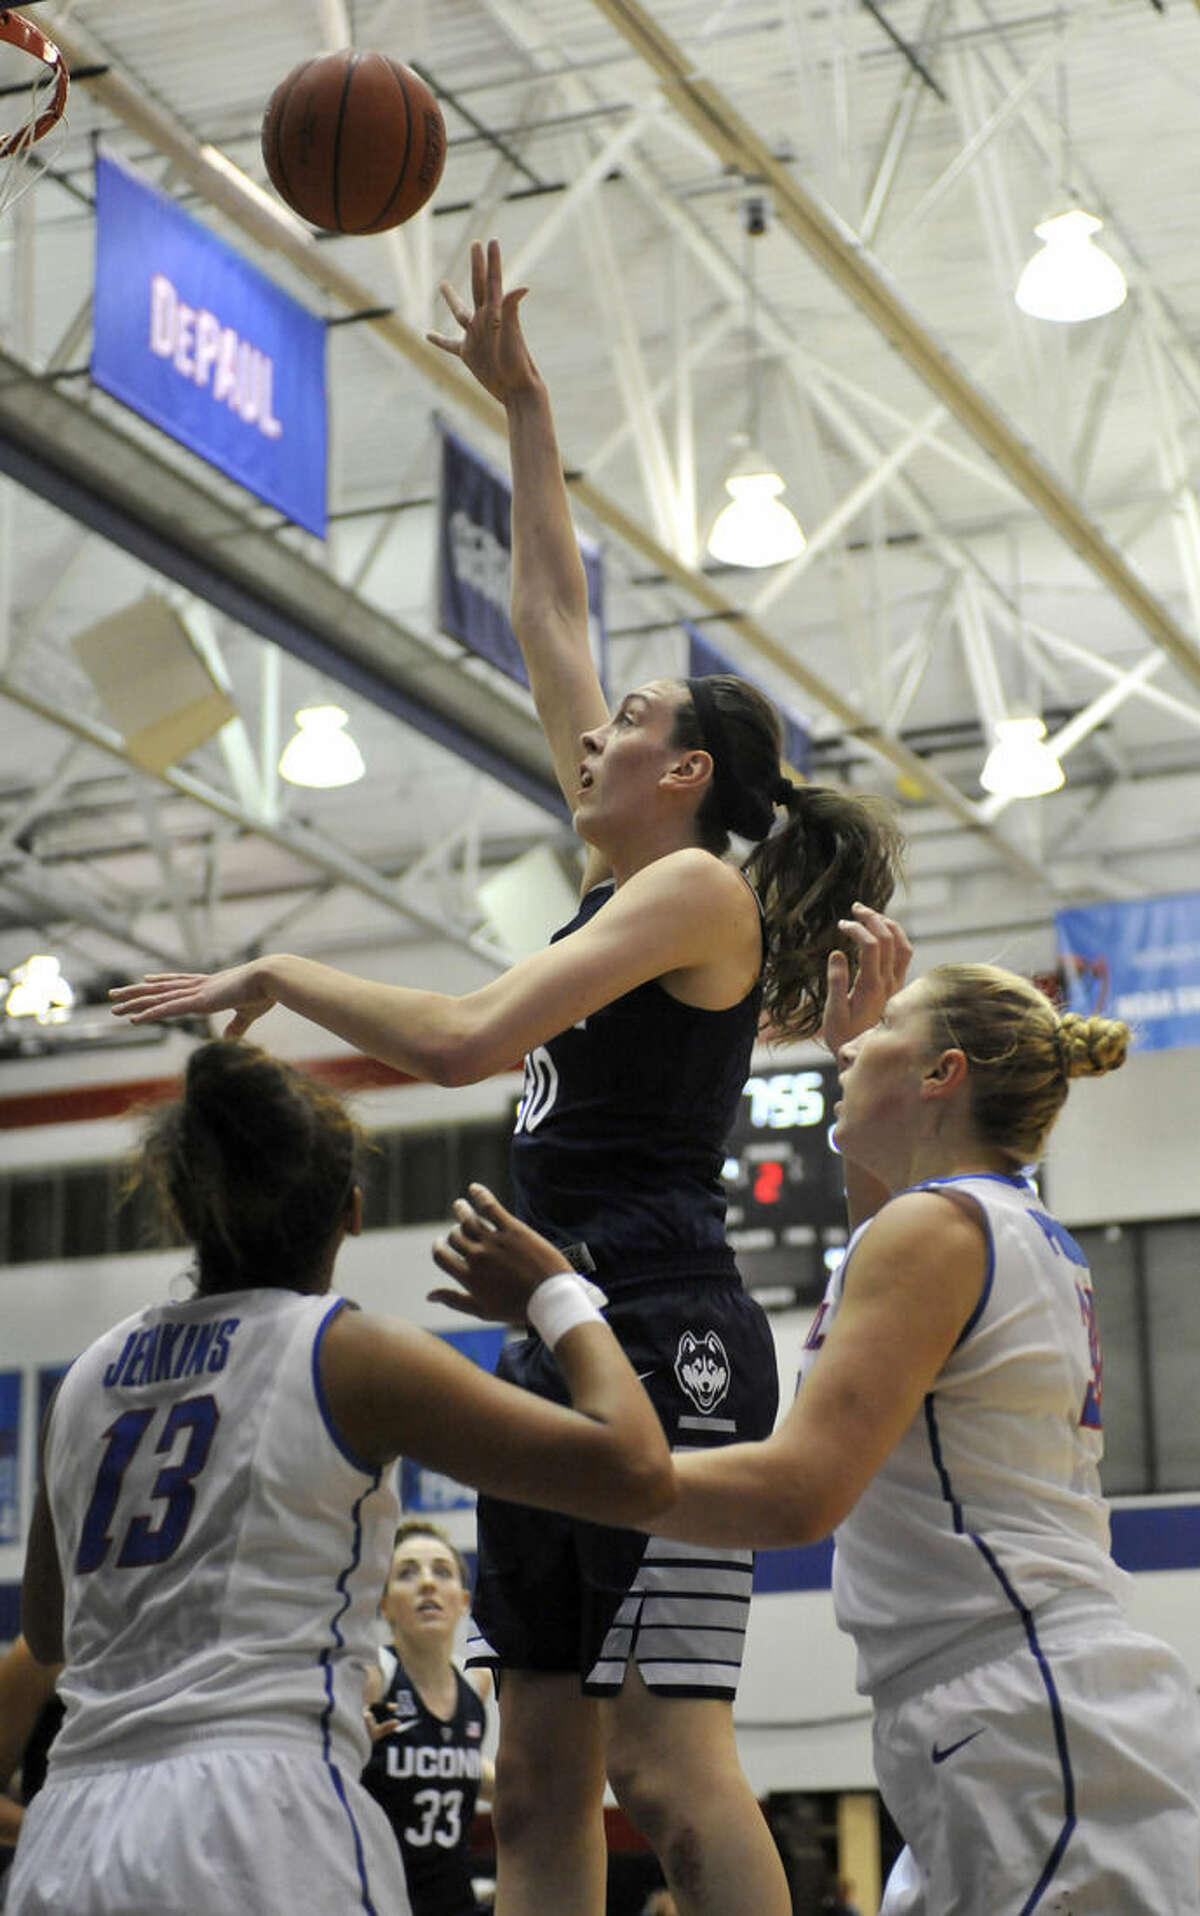 Connecticut's Breanna Stewart (30), shoots against DePaul's Chanise Jenkins (13), and Megan Podkowa (30), during the first half of an NCAA college basketball game Wednesday, Dec. 2, 2015, in Chicago. (AP Photo/Paul Beaty)